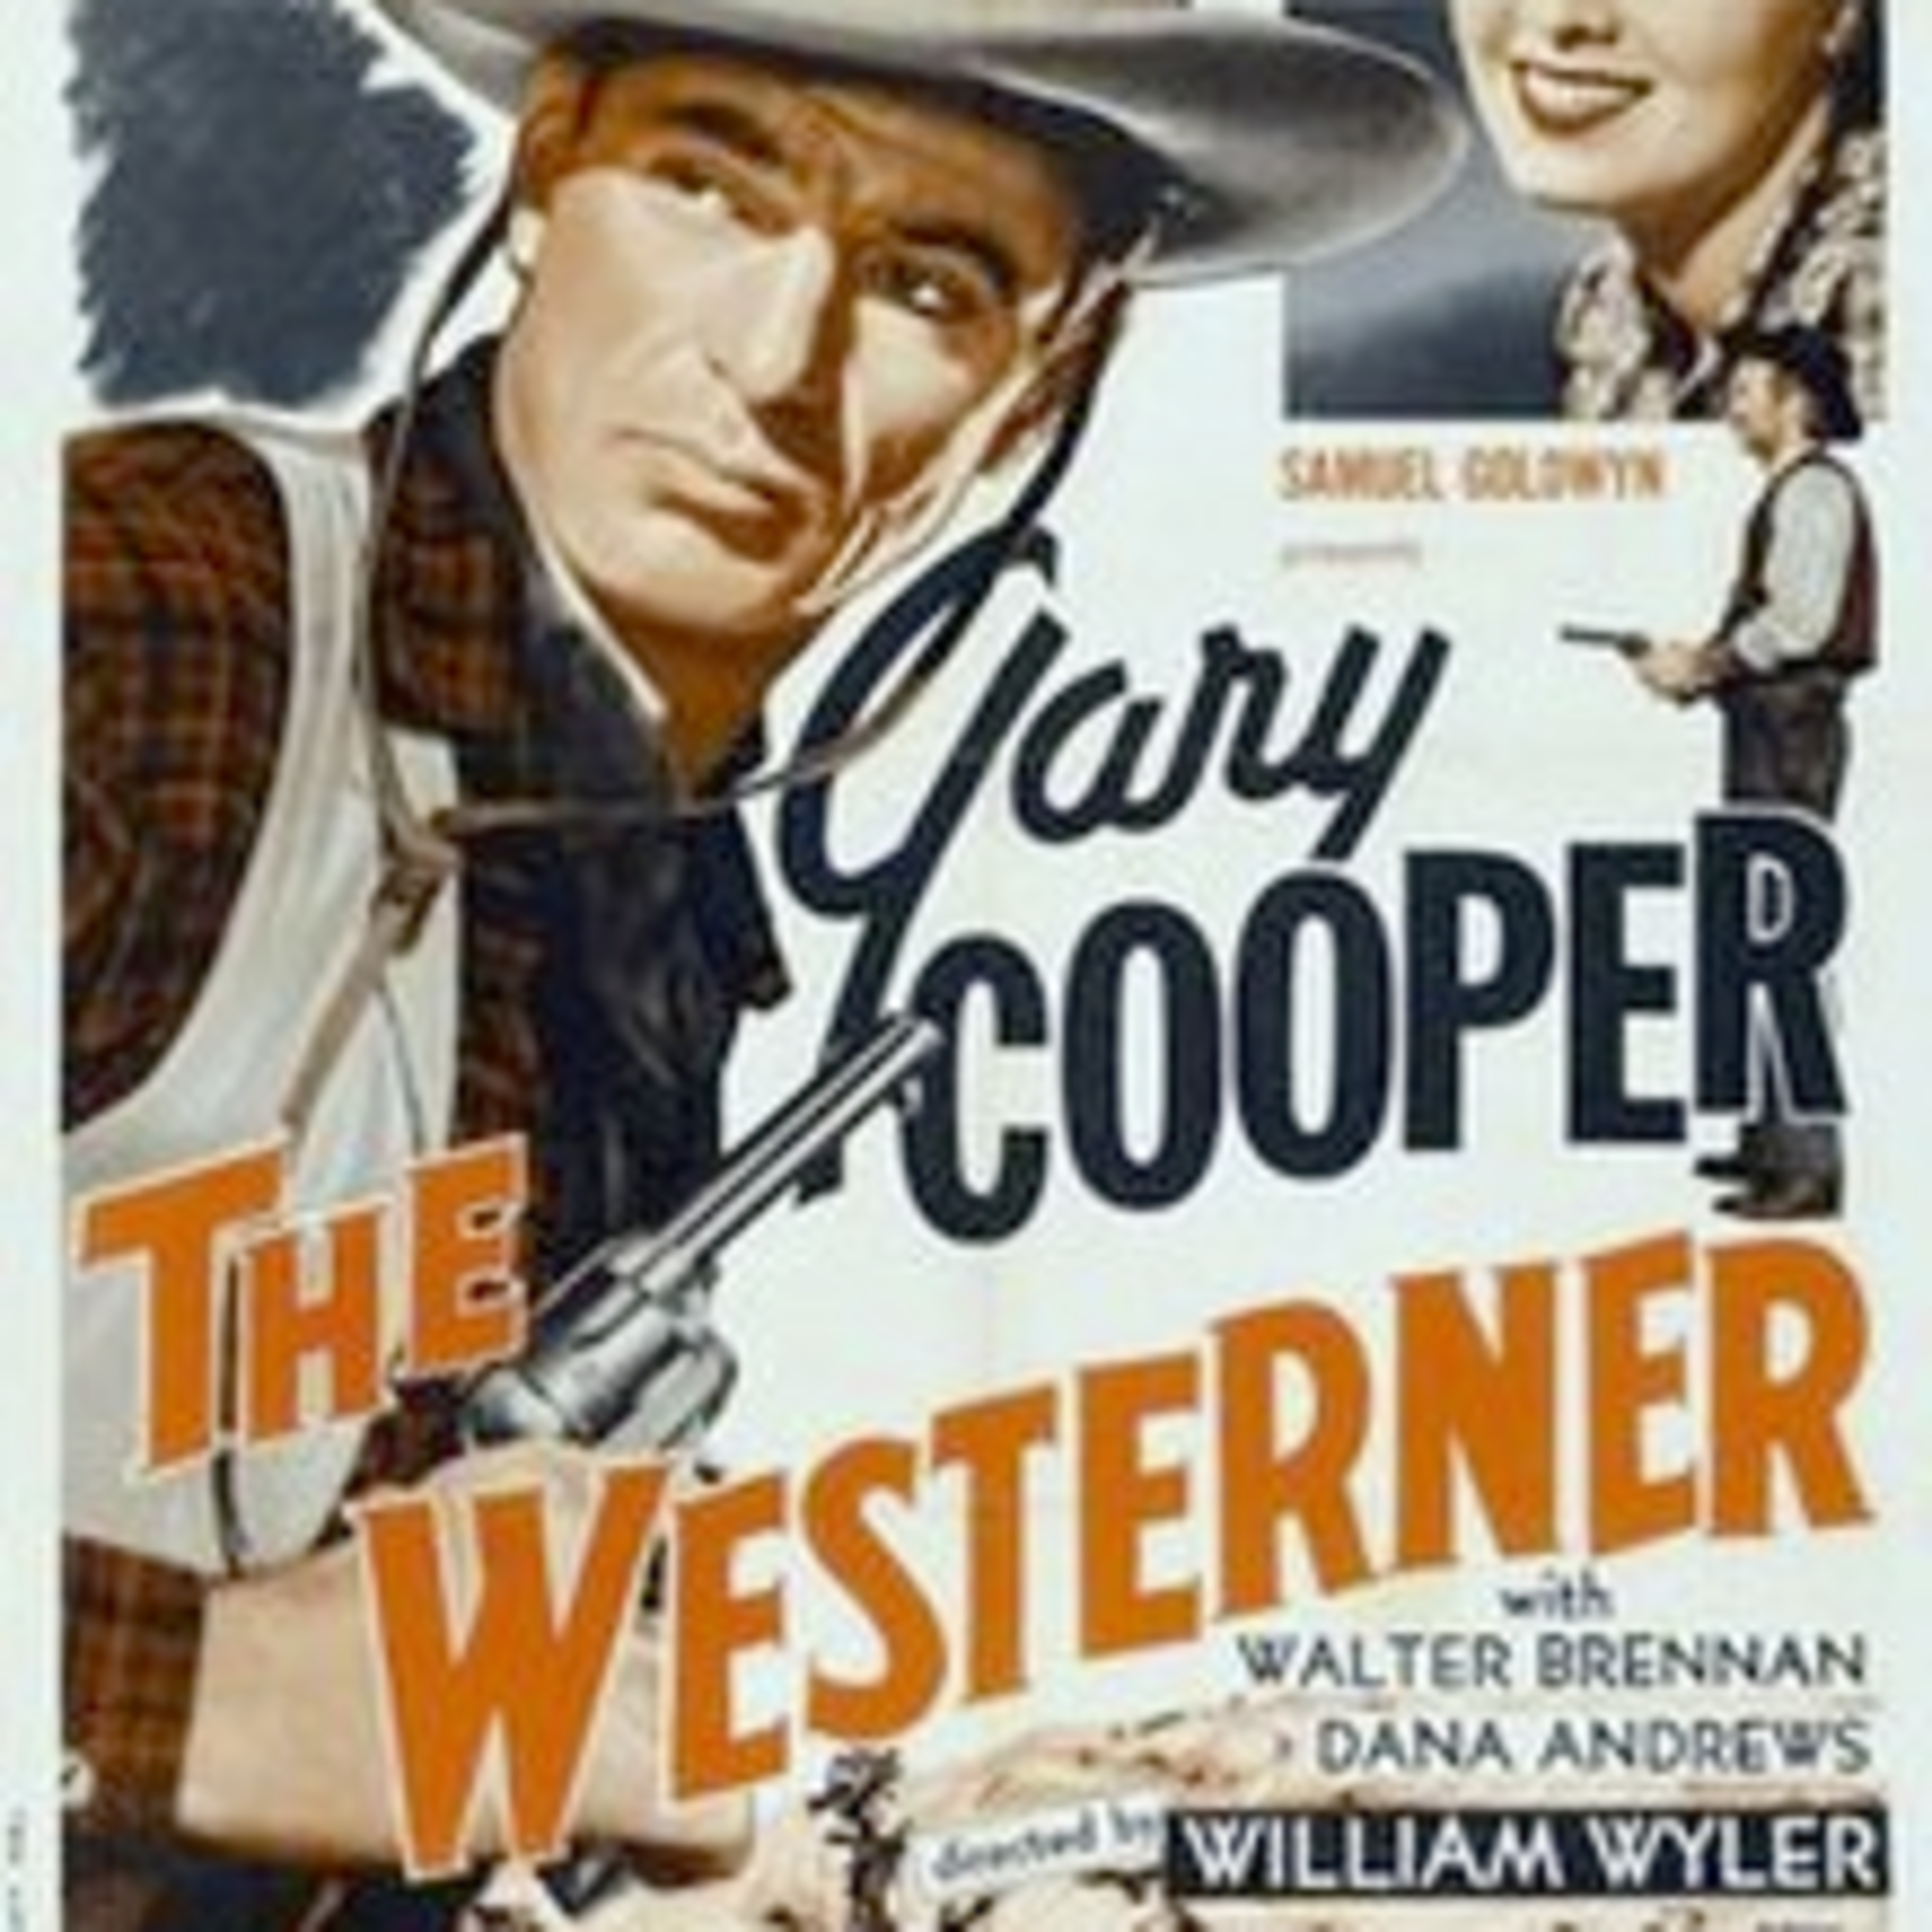 The Westerner - Gary Cooper & Walter Brennan - All-Star Radio Dramas of Classic Movies - Lux Radio Theater